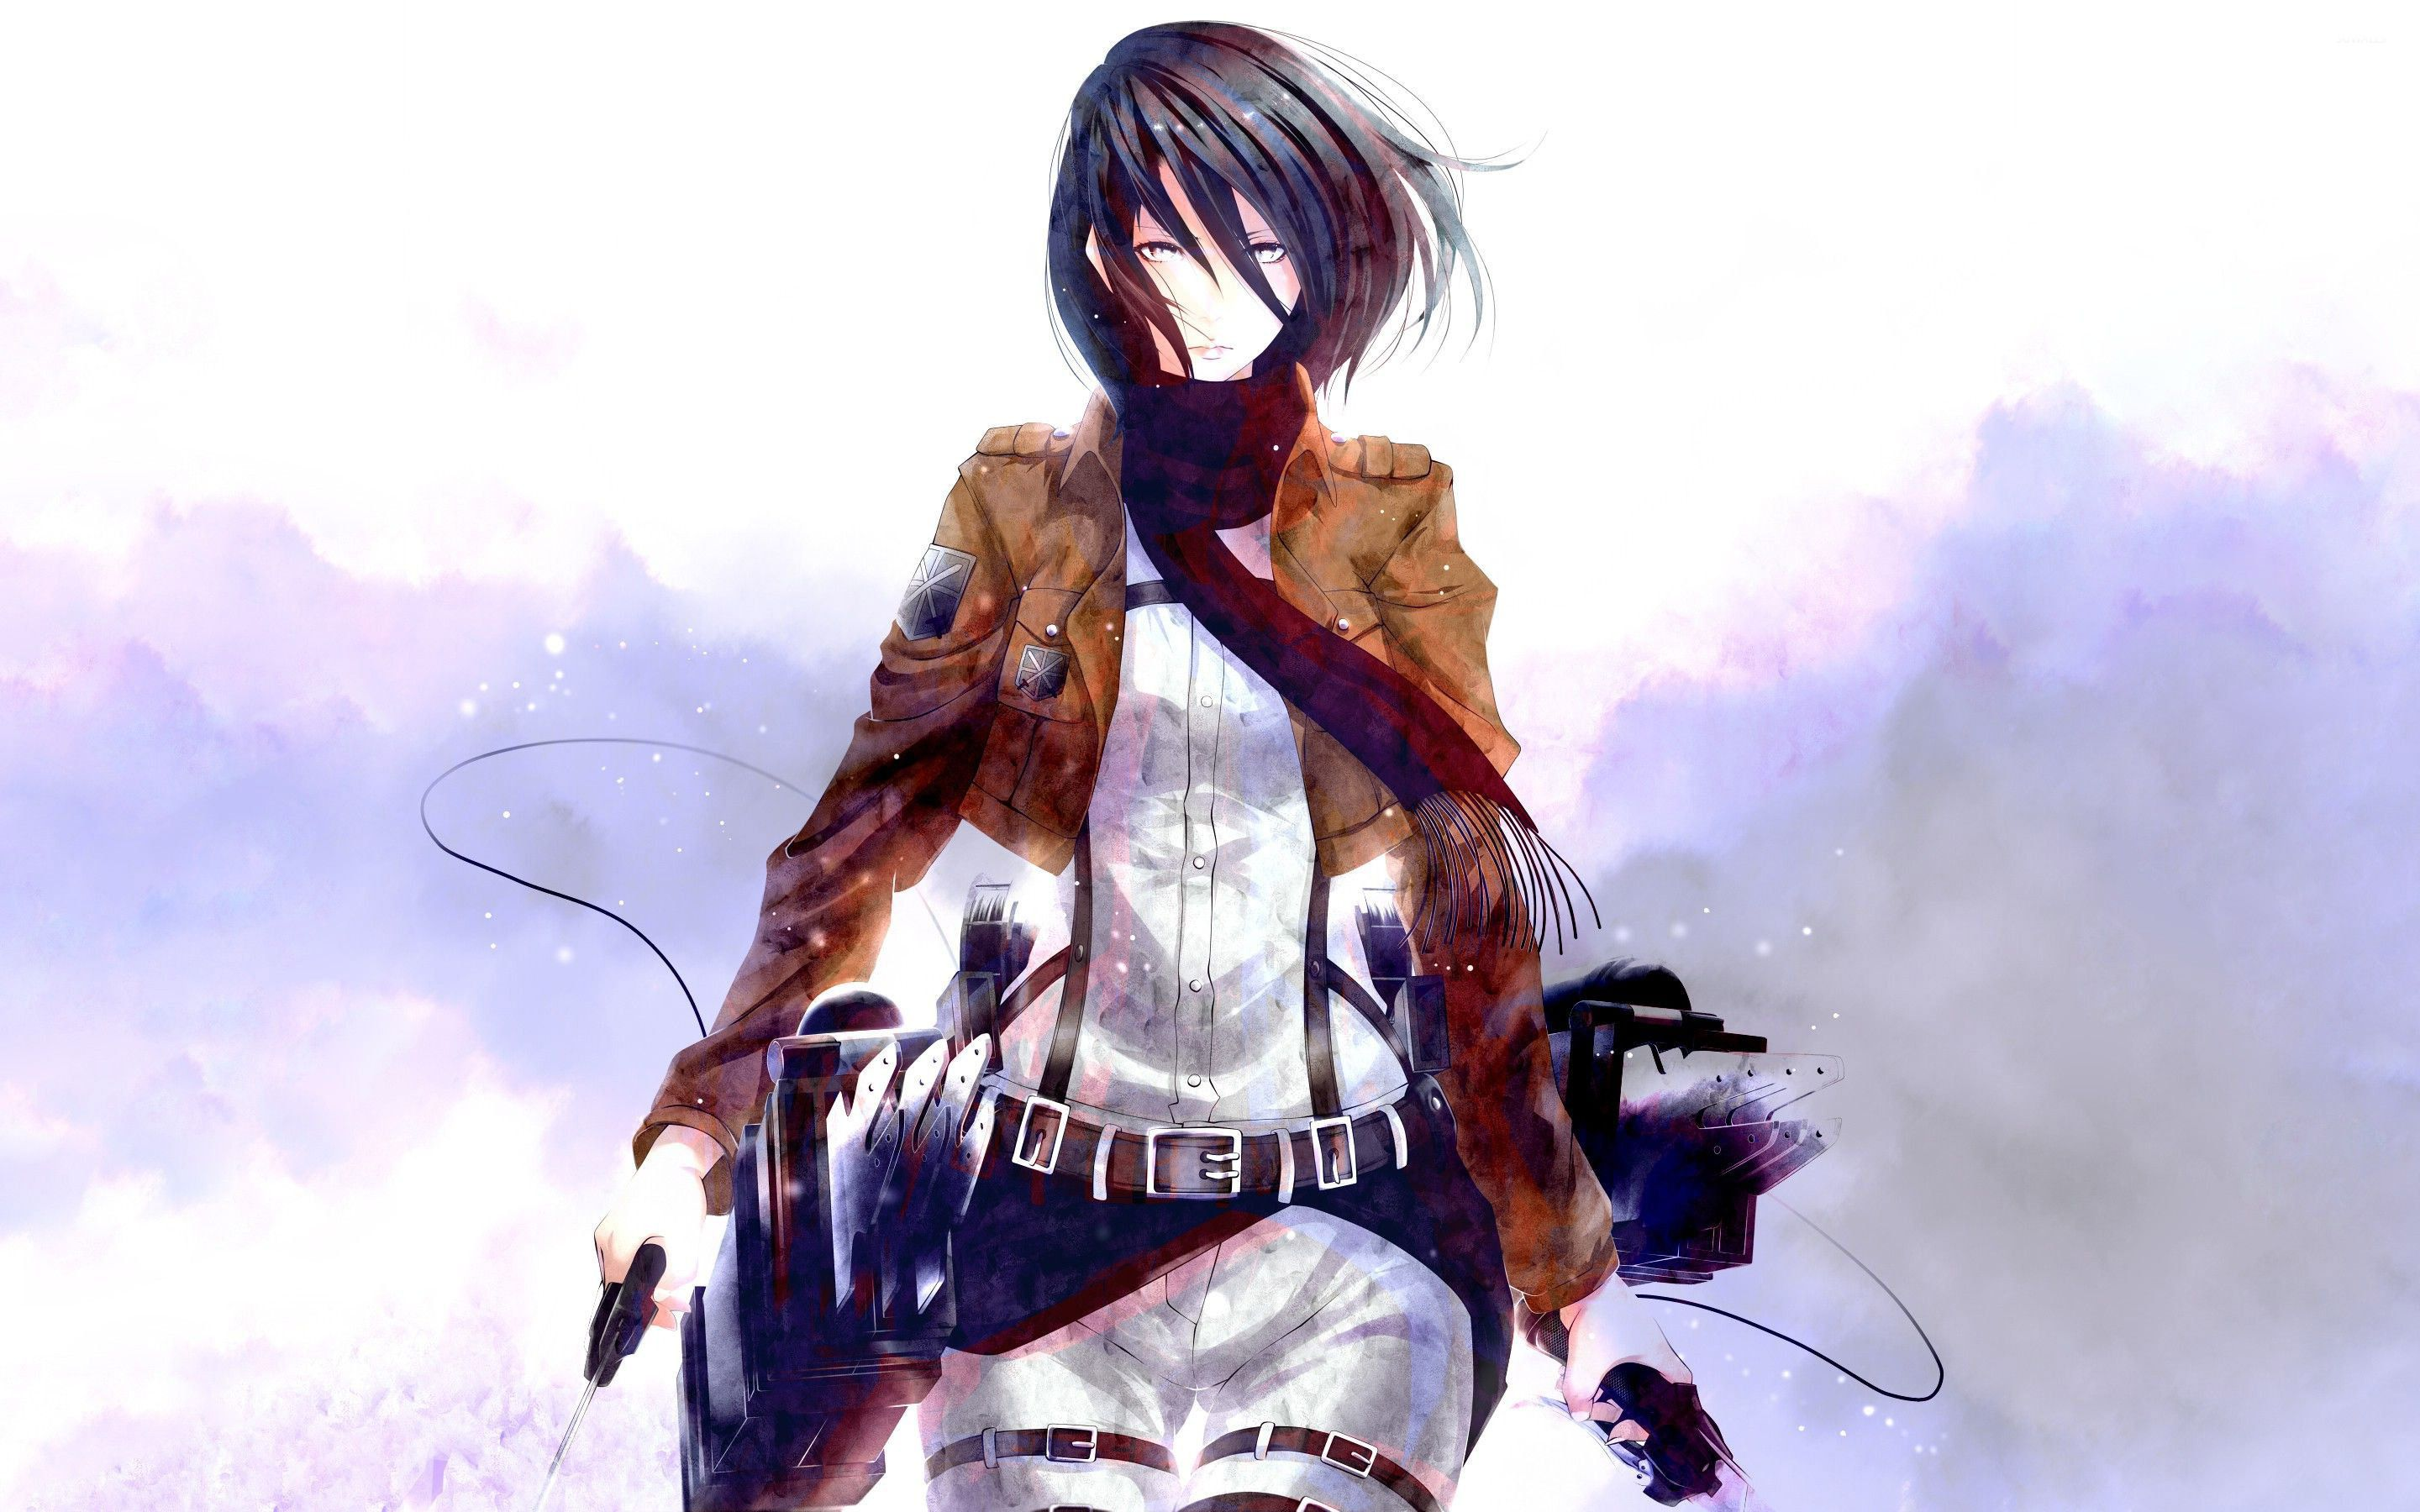 Mikasa Ackerman Wallpapers Top Free Mikasa Ackerman Backgrounds Wallpaperaccess